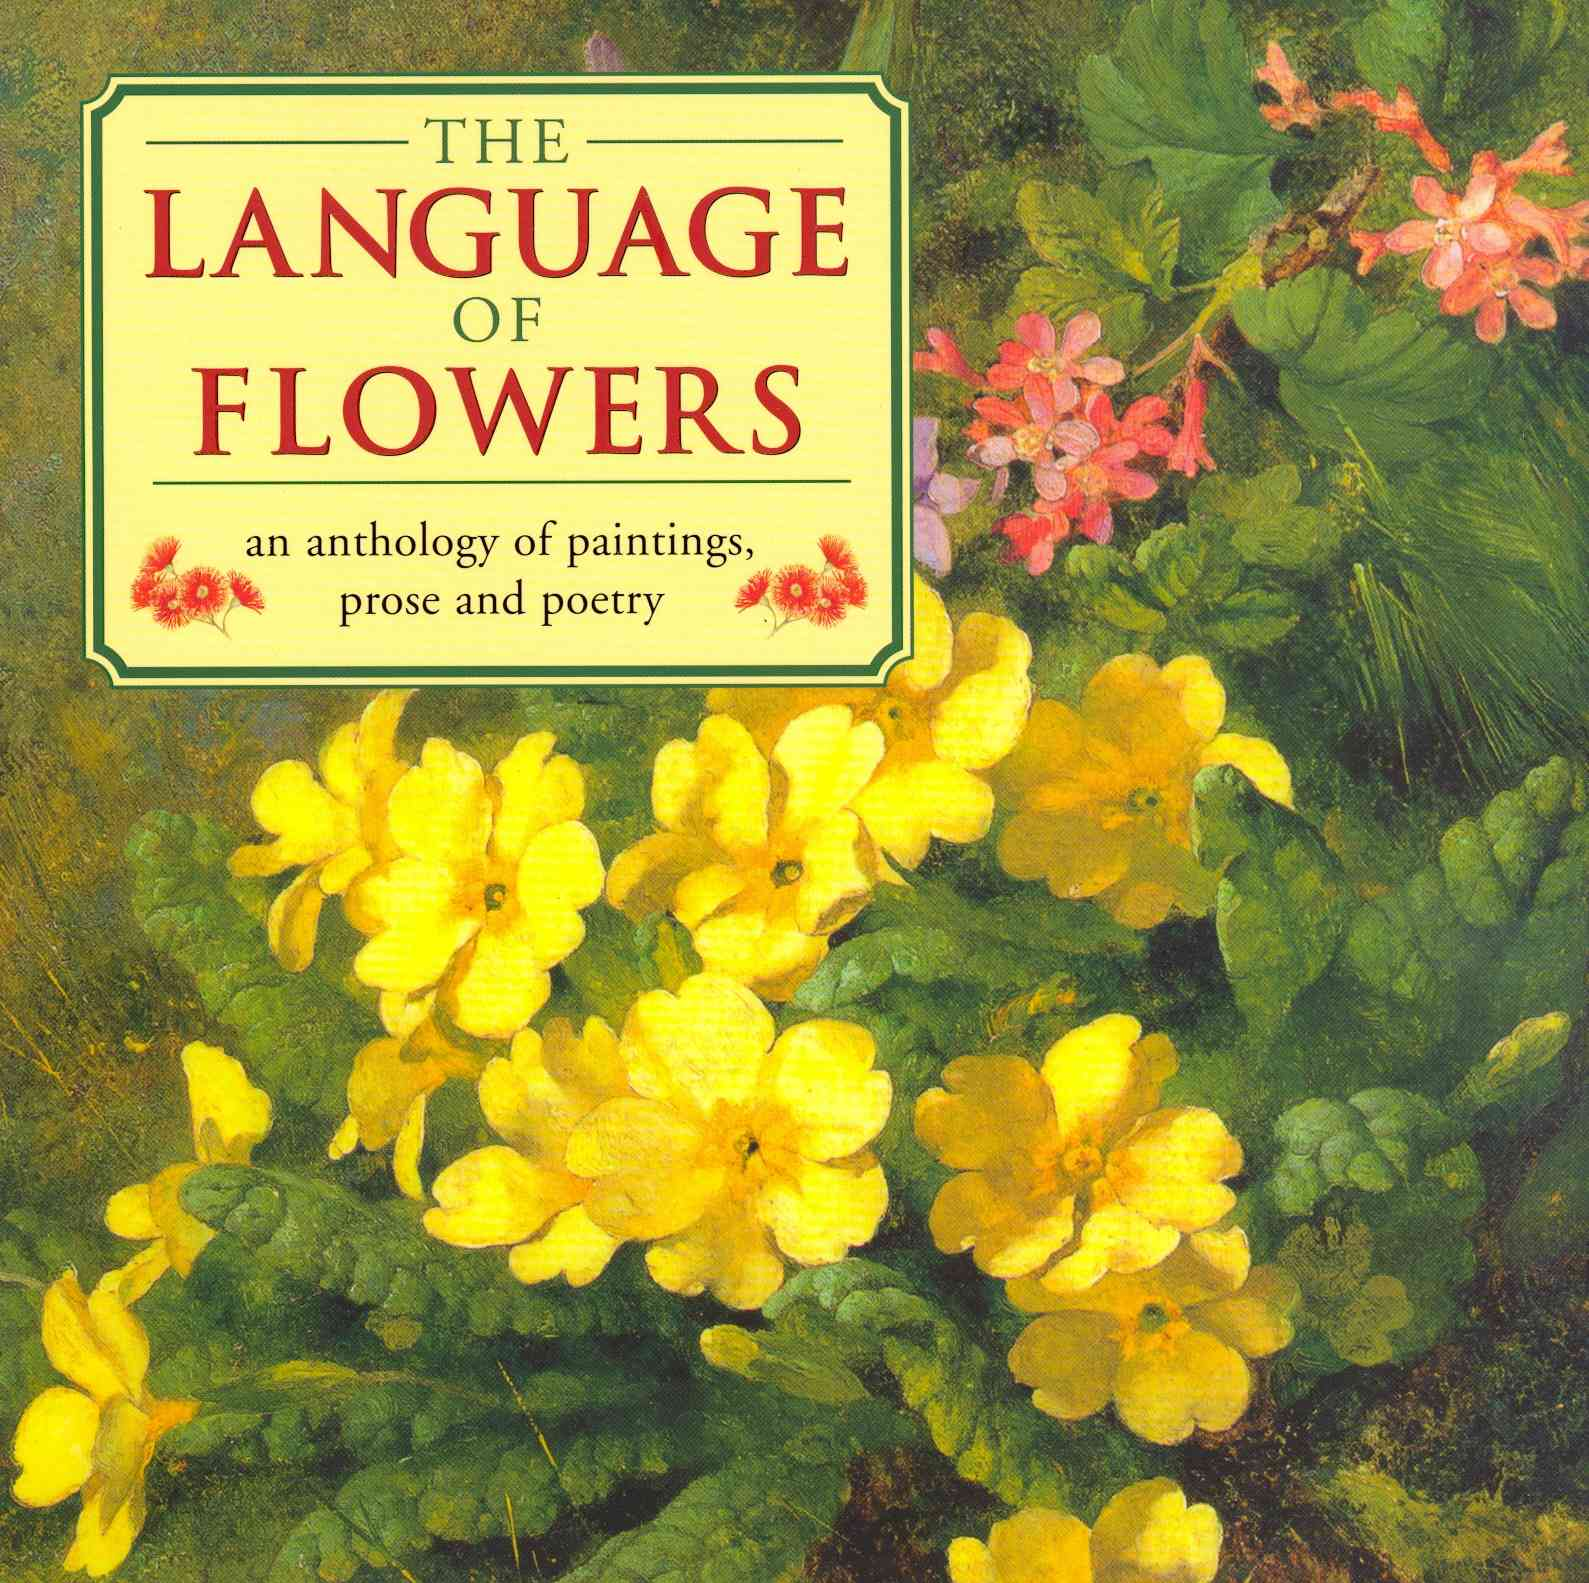 The Language of Flowers: An Anthology of Paintings, Prose and Poetry (Hardcover)